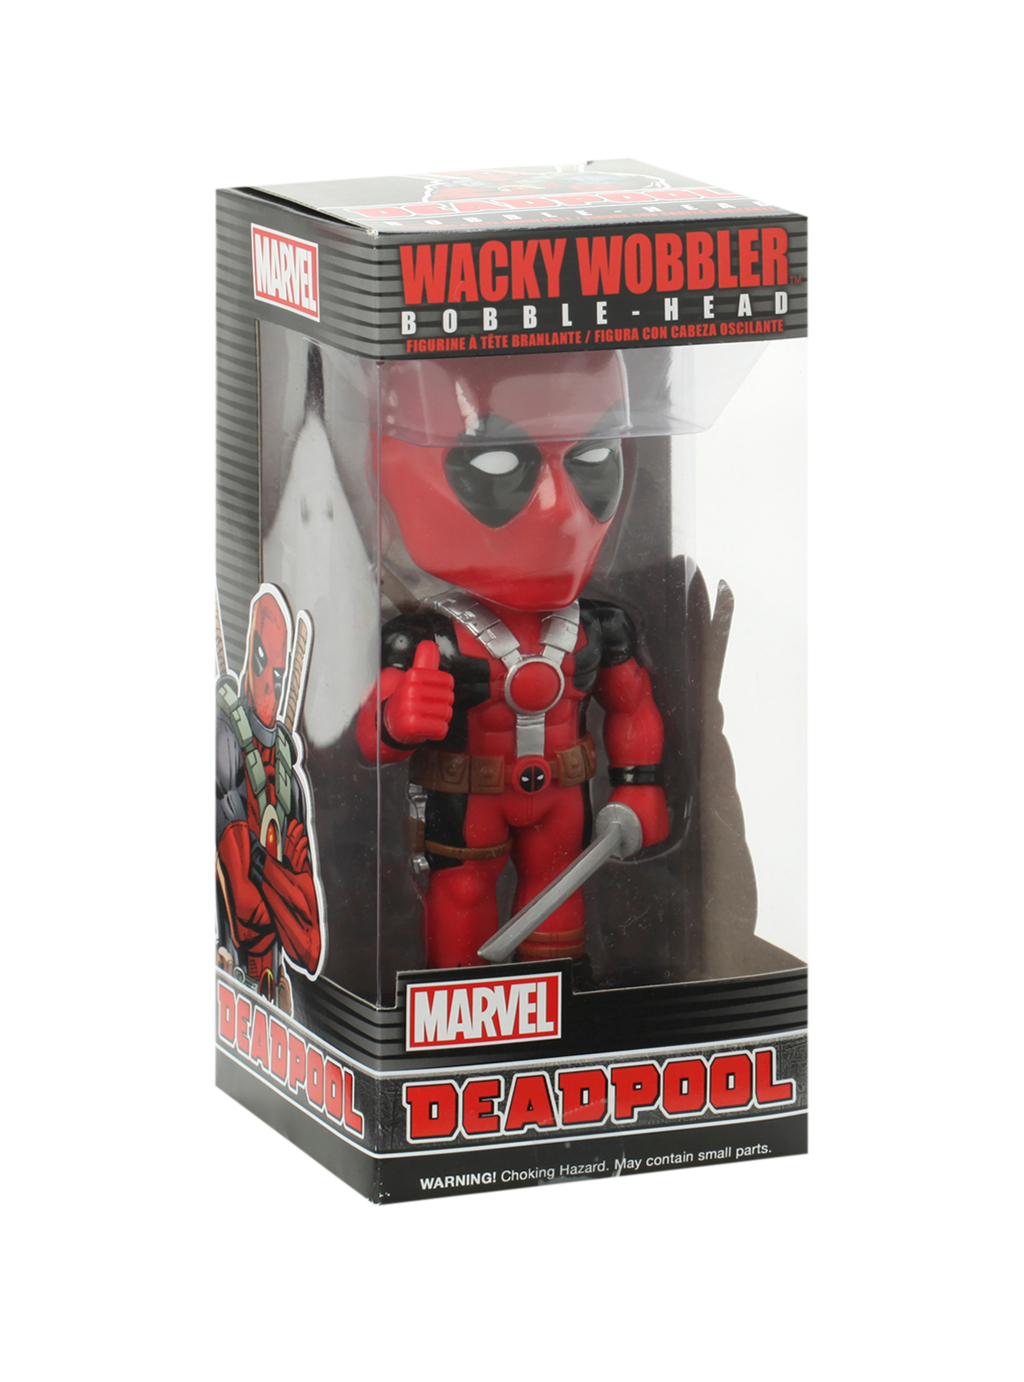 Deadpool Bobblehead - Funko Wacky Wobbler Marvel 3